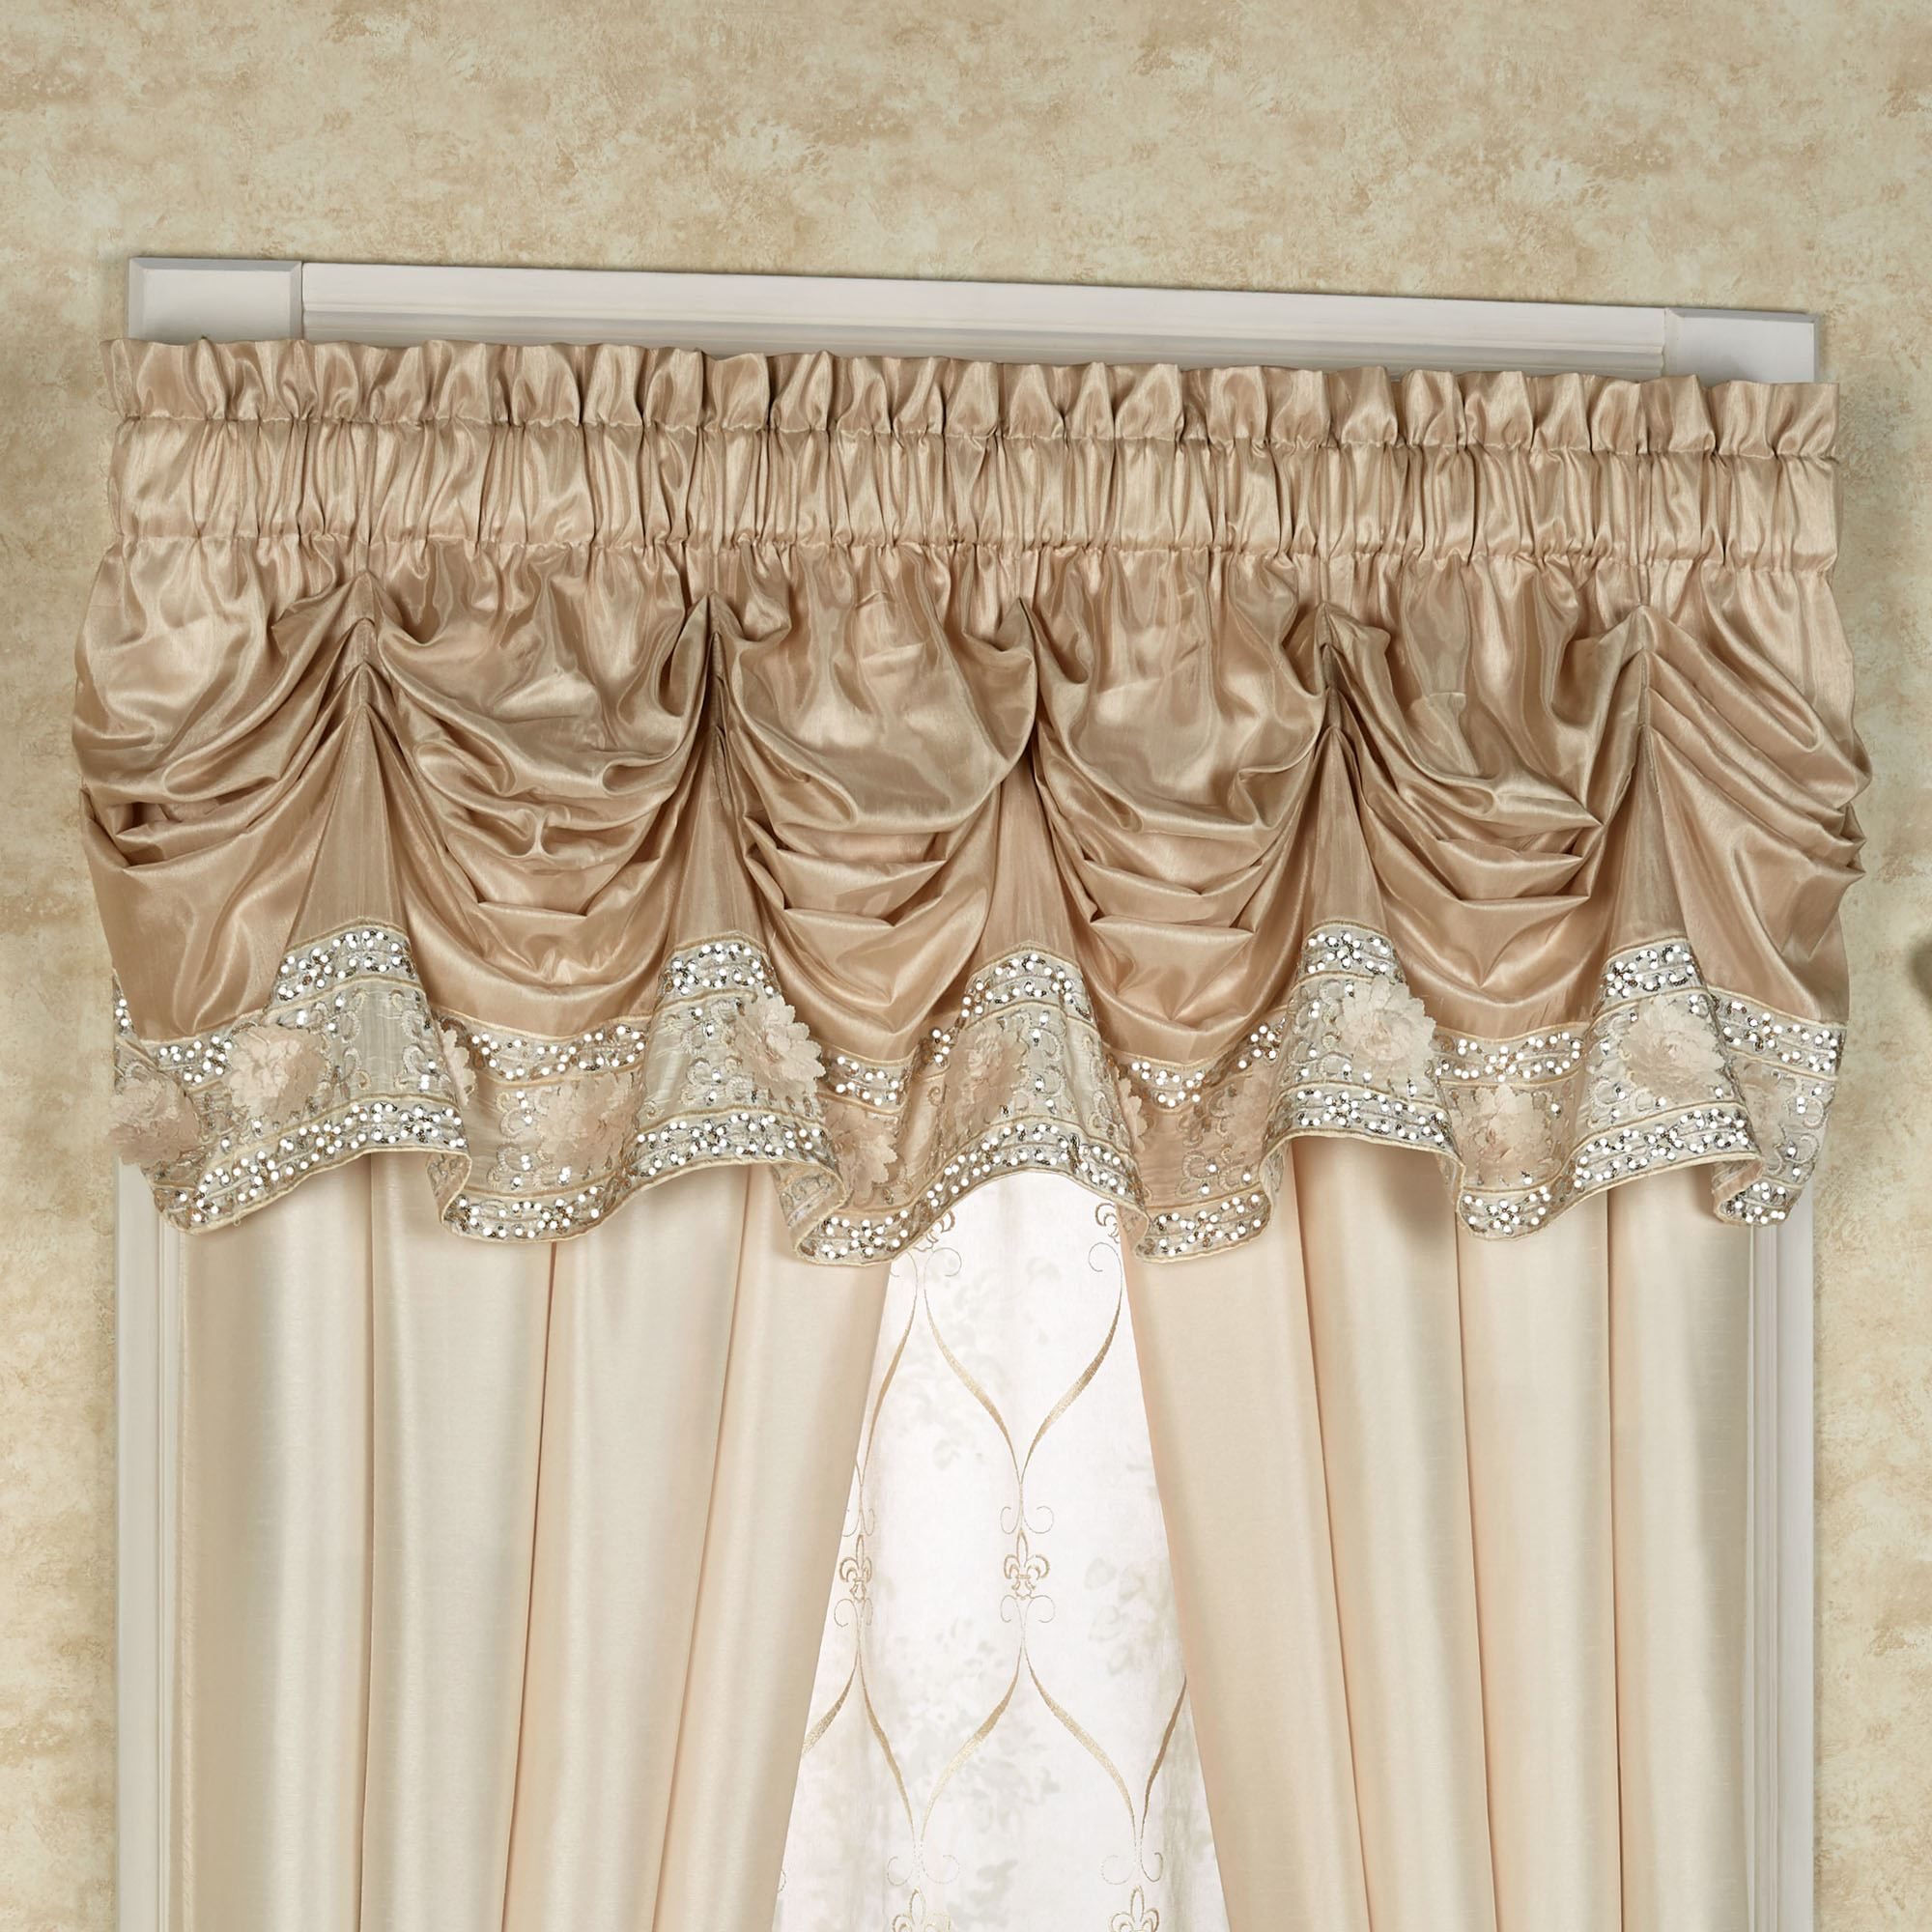 thecurtainshop com swags duchess valance reston window ivory valances toppers